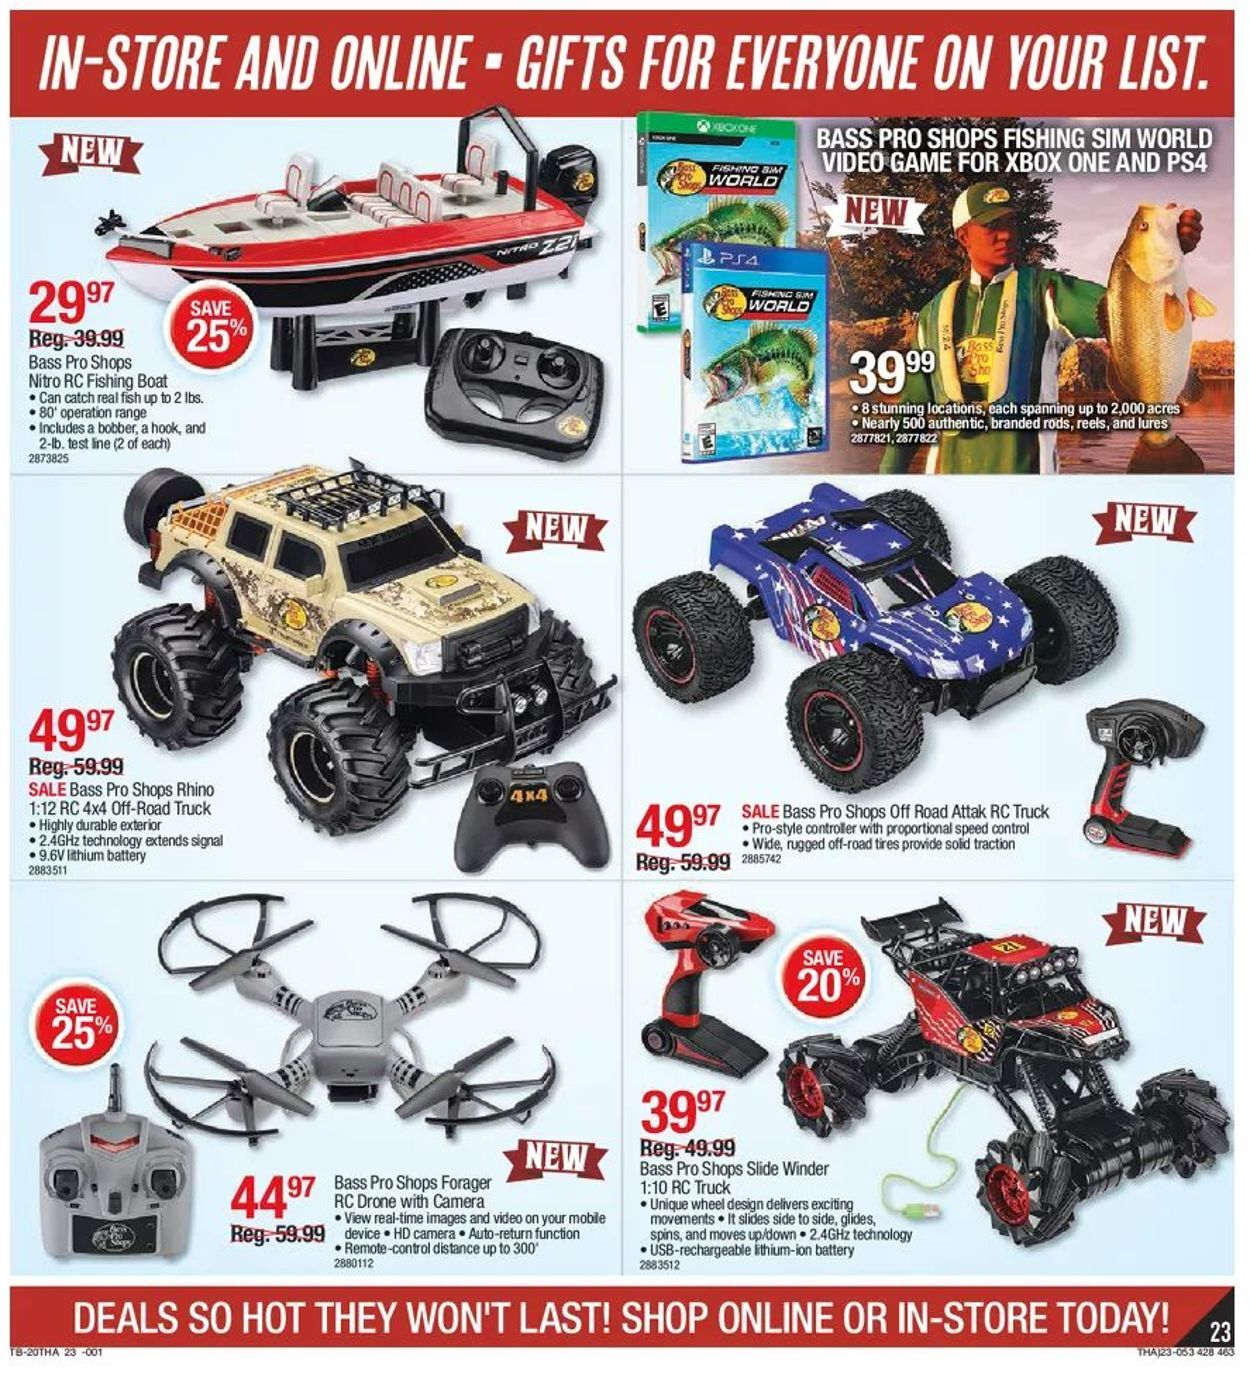 Bass Pro Shops Black Friday 2020 Page 23